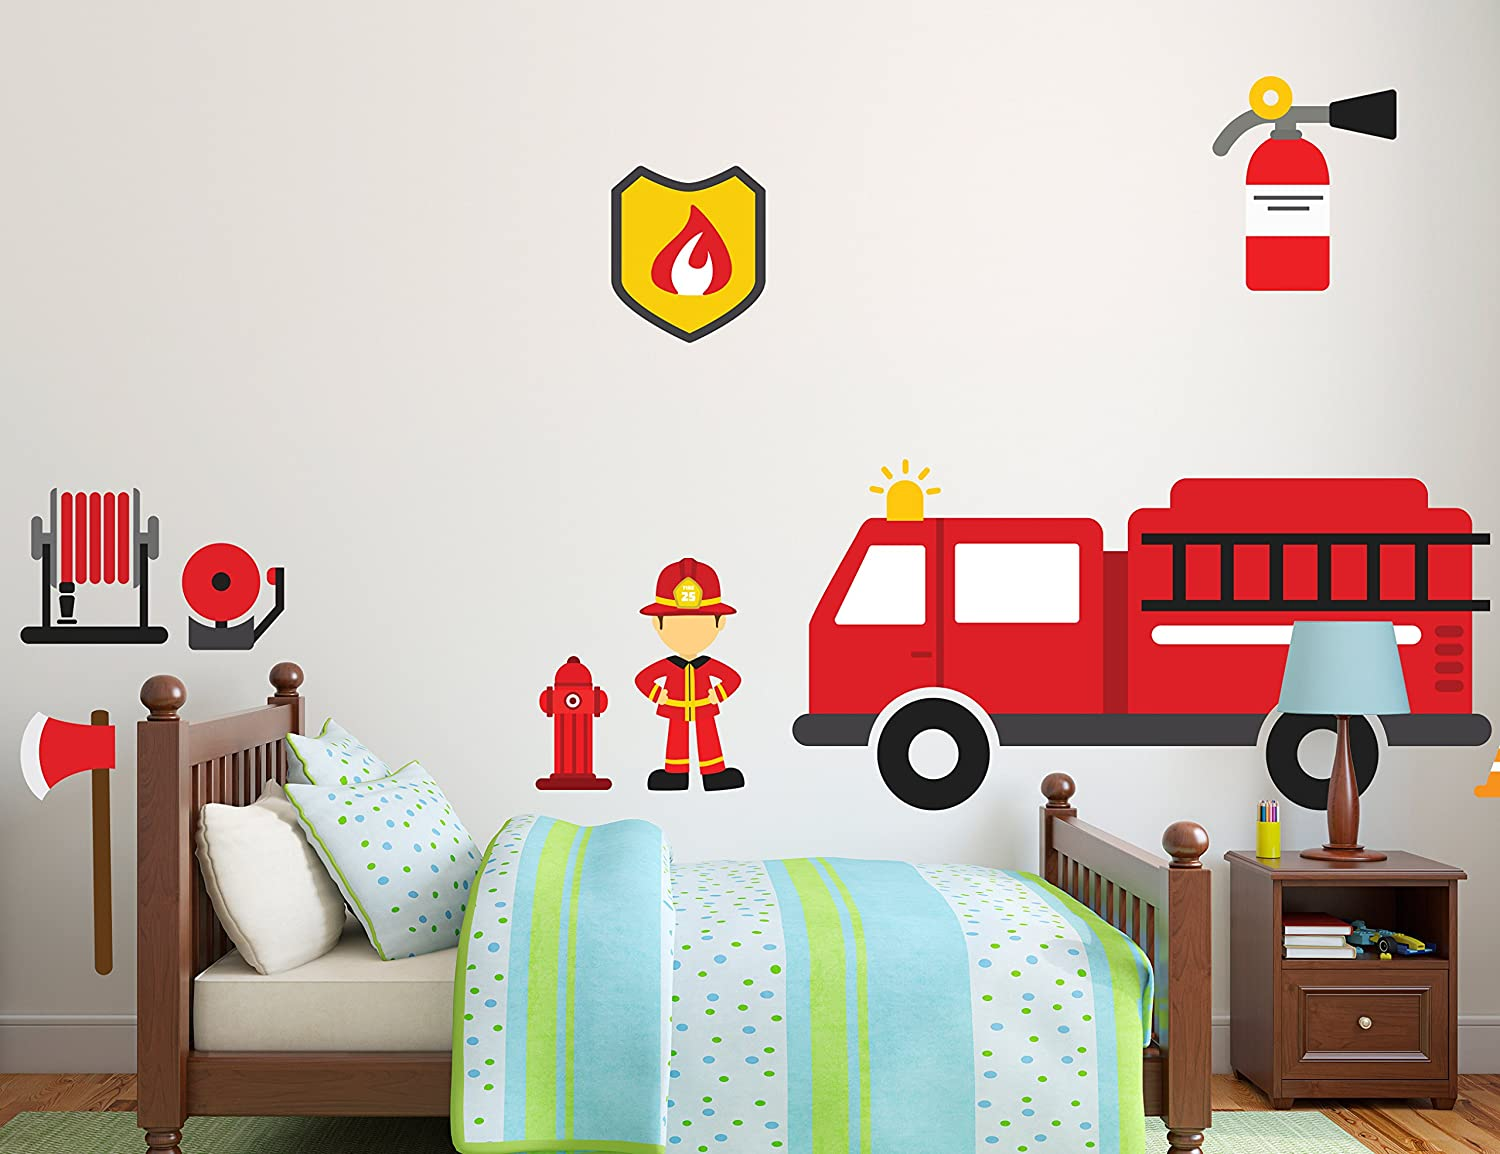 "Firetruck & Fireman Theme DIY - Mural Room Wall Decals - Baby Boy Girl Unisex Decoration - Mural Wall Decal Sticker For Home Interior Decoration Car Laptop (Wide 27"" x 14"" Height)"